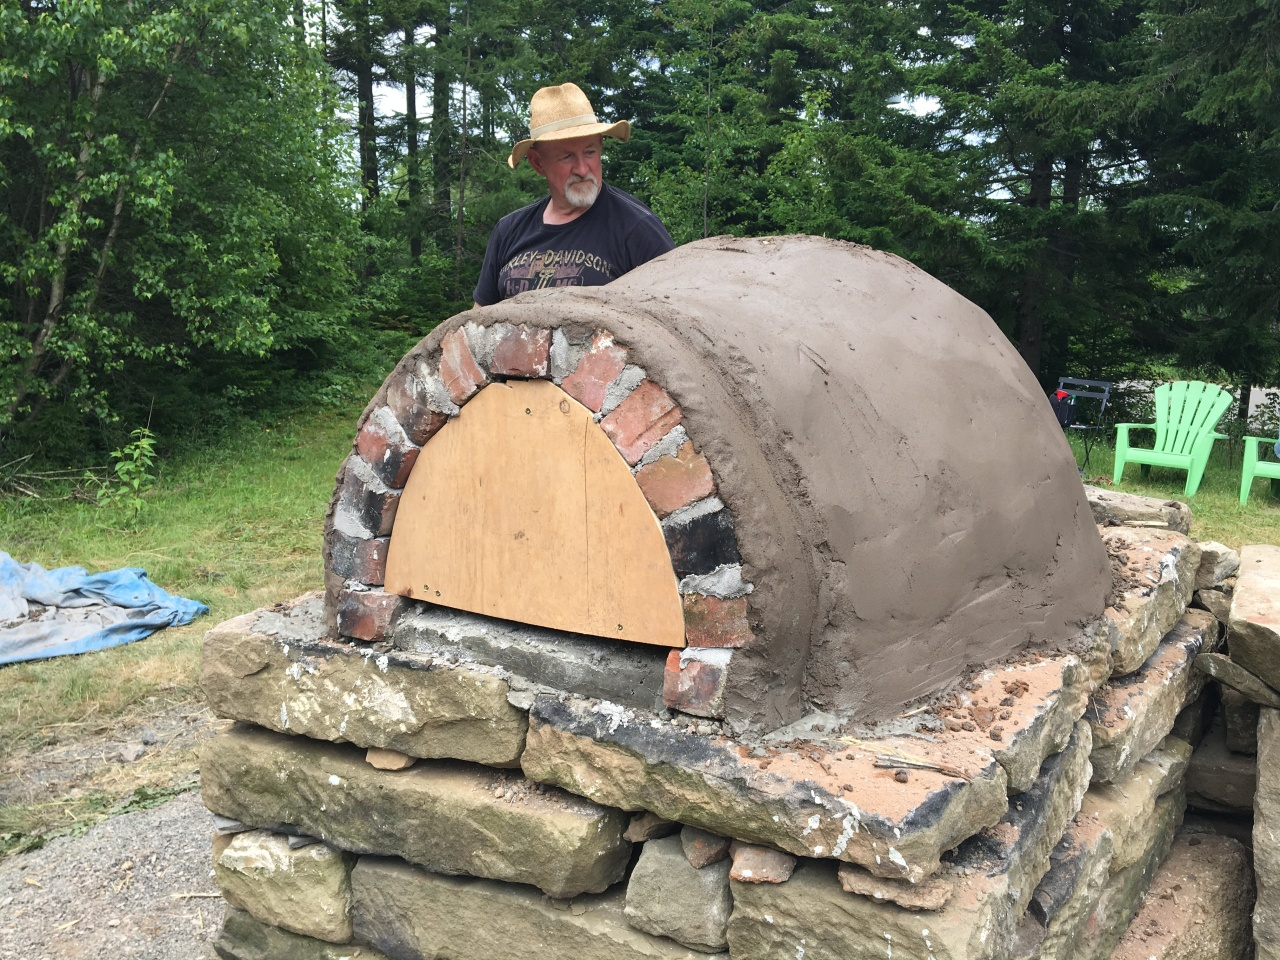 The Making of a Cob Oven